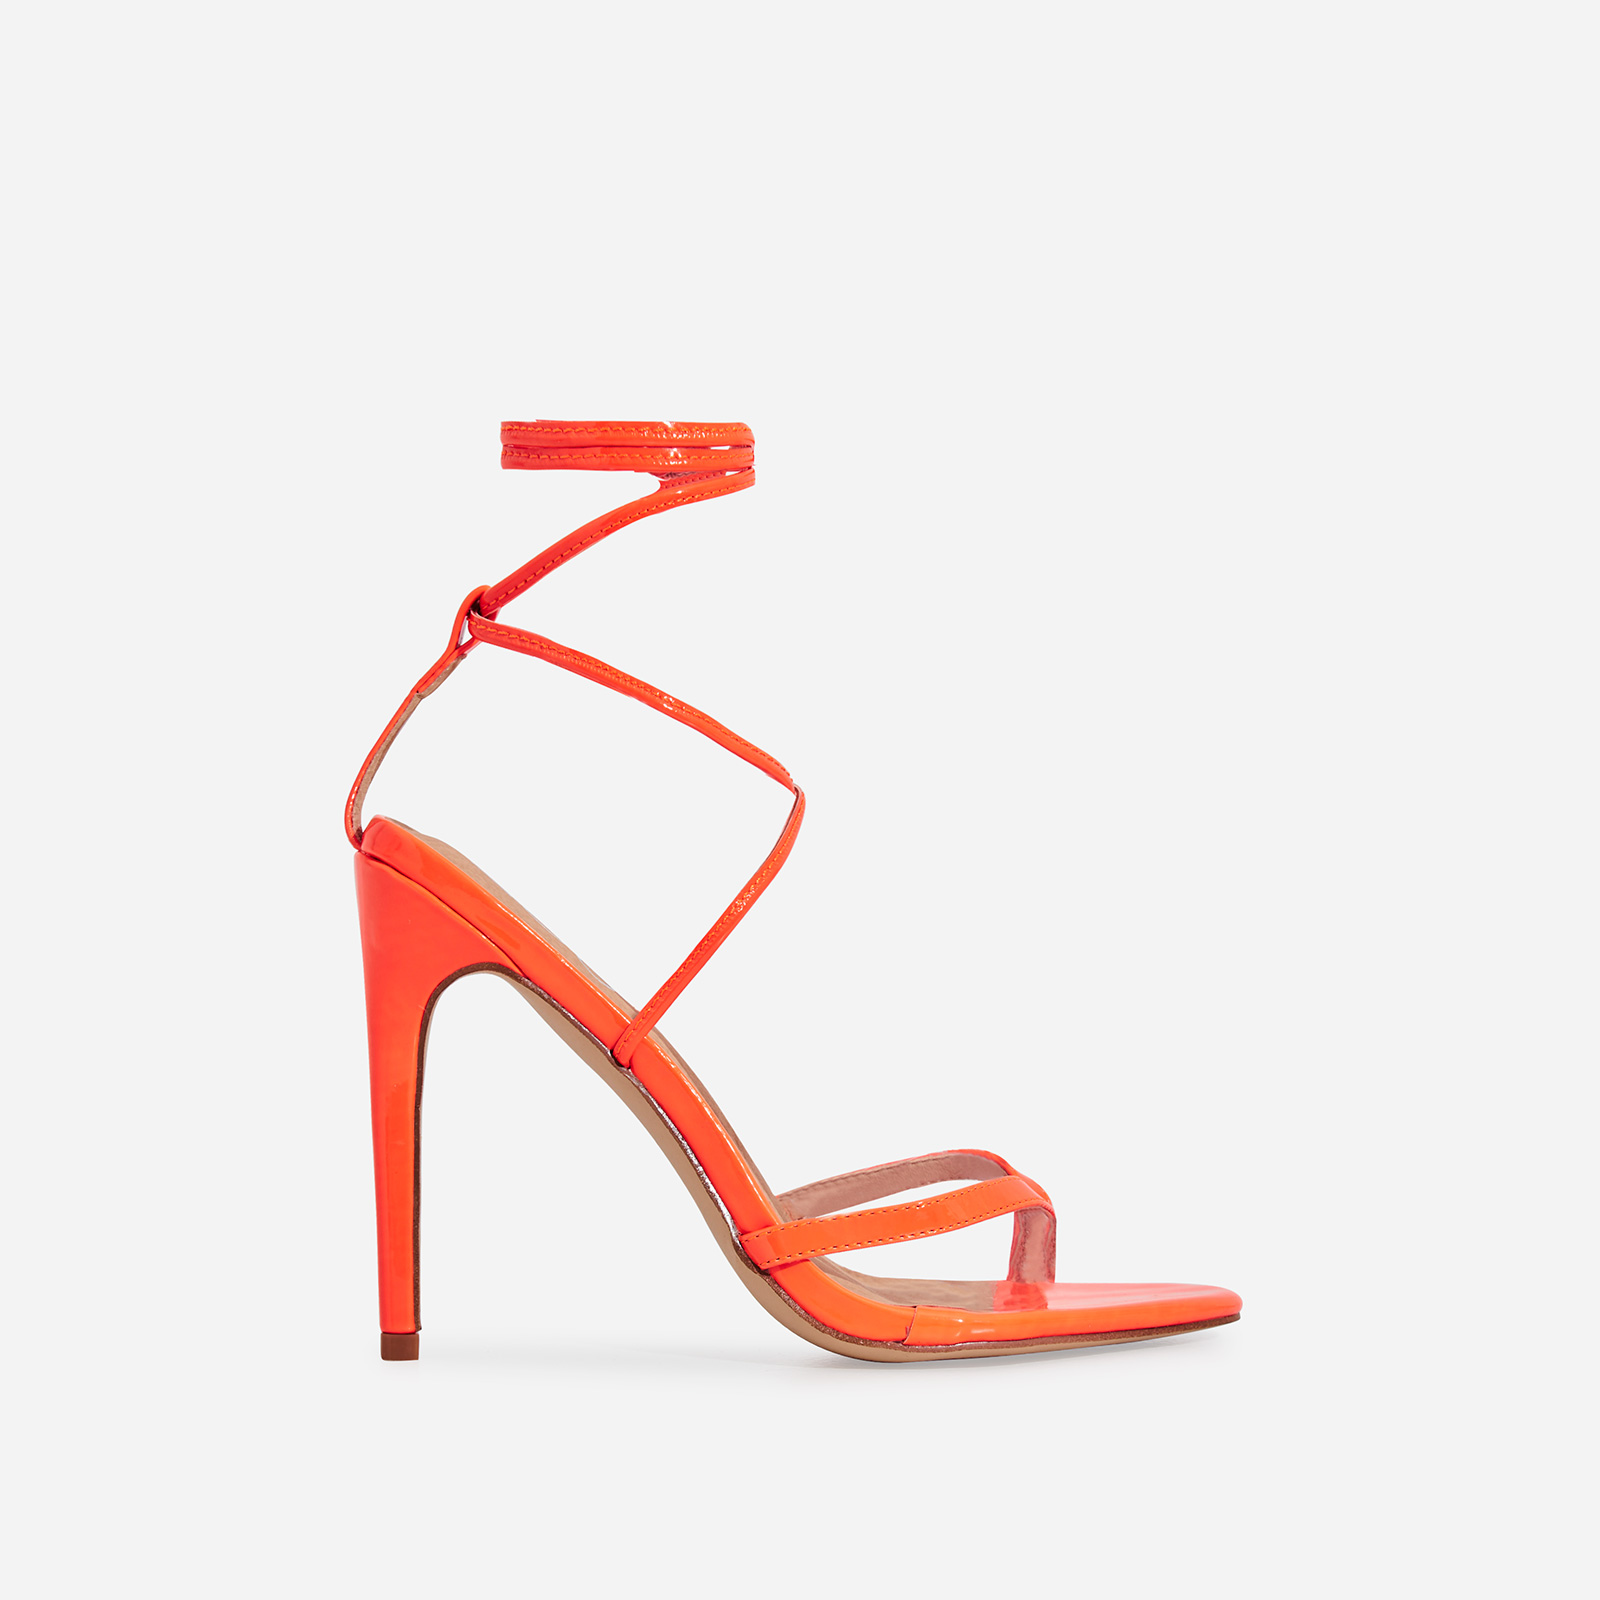 Malina Lace Up Heel In Orange Patent